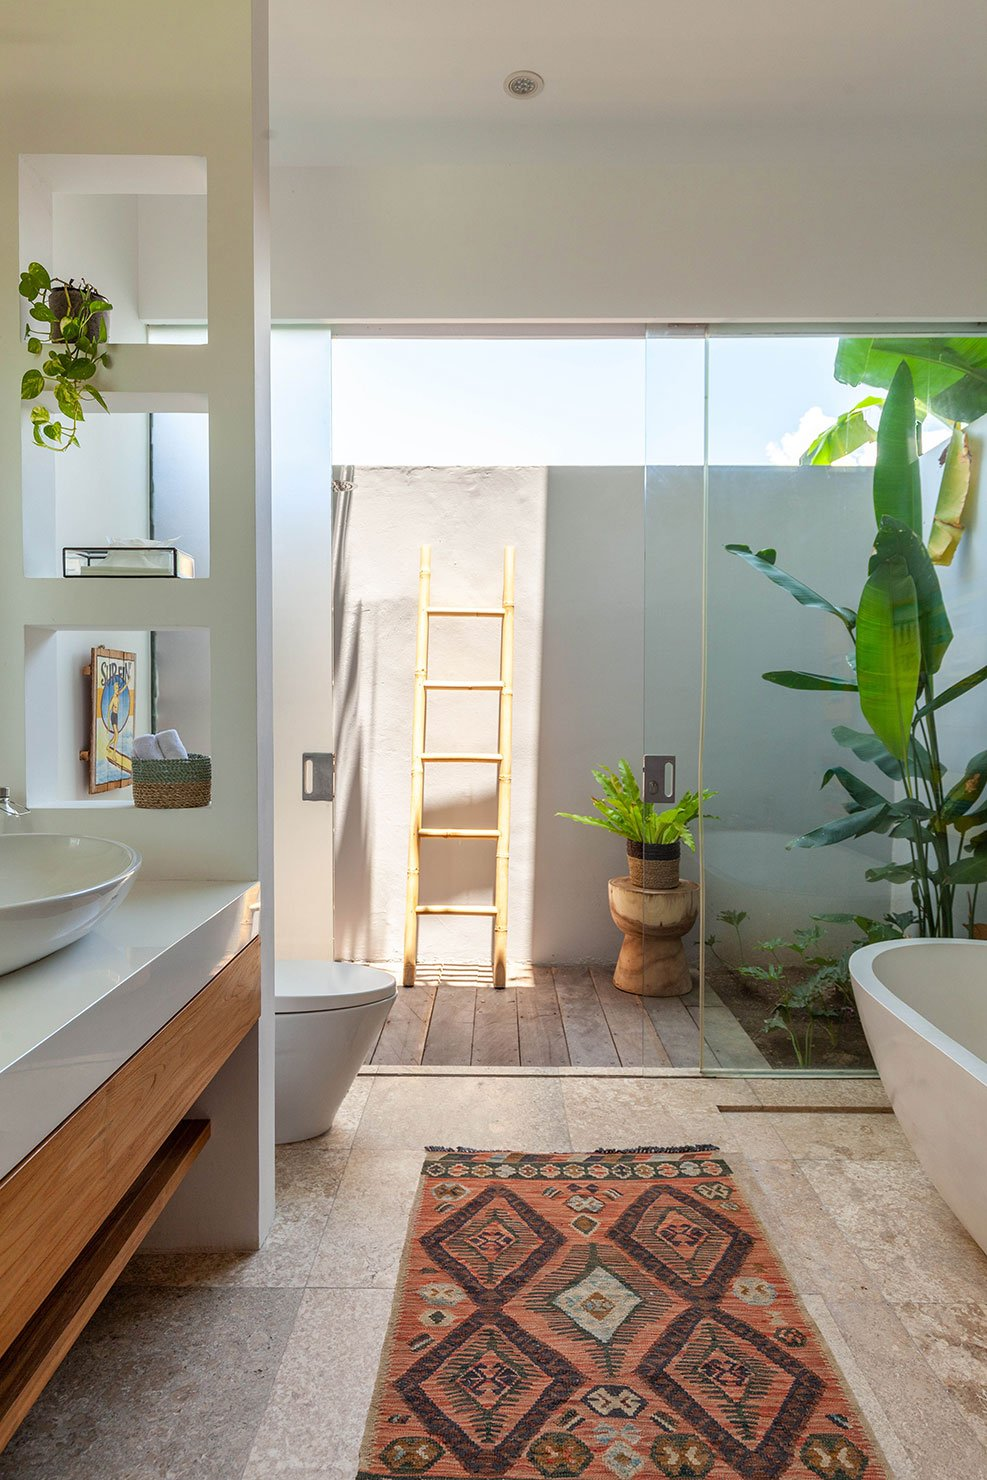 Bali Interiors- Bathrooms interiors